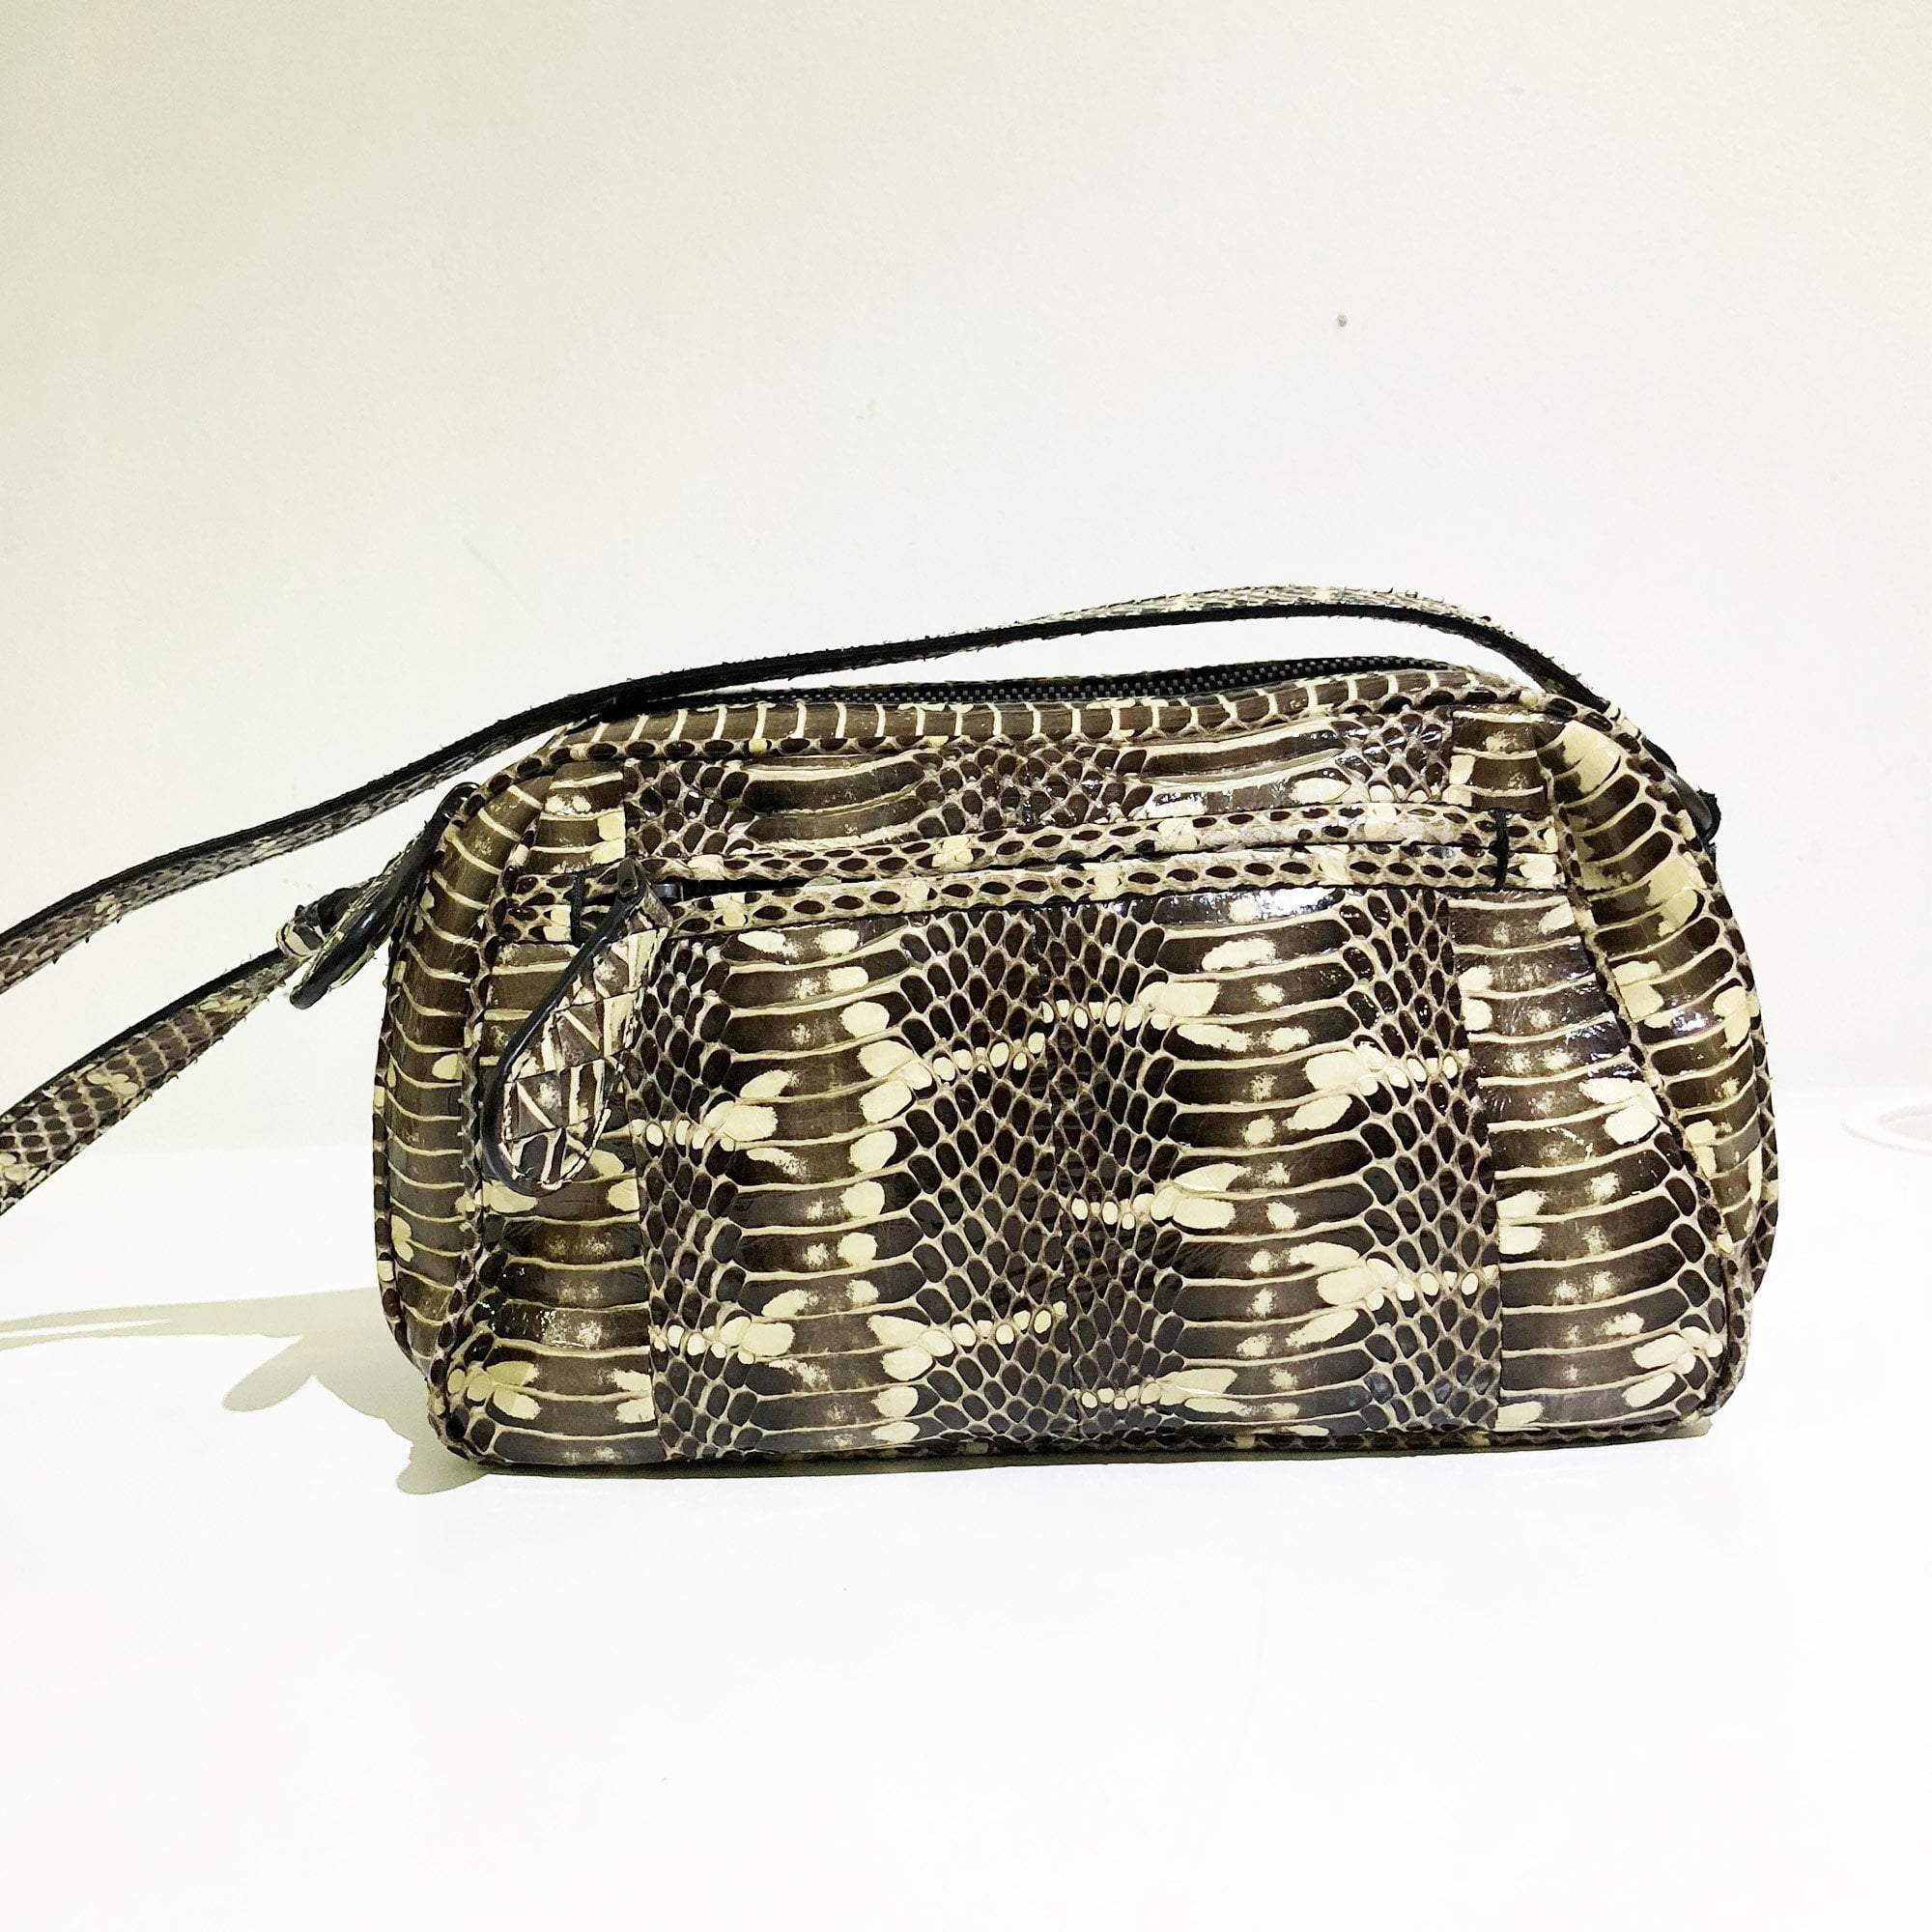 Bottega Veneta Chartreuse Mangrove And Ayers Snakeskin Crossbody Bag